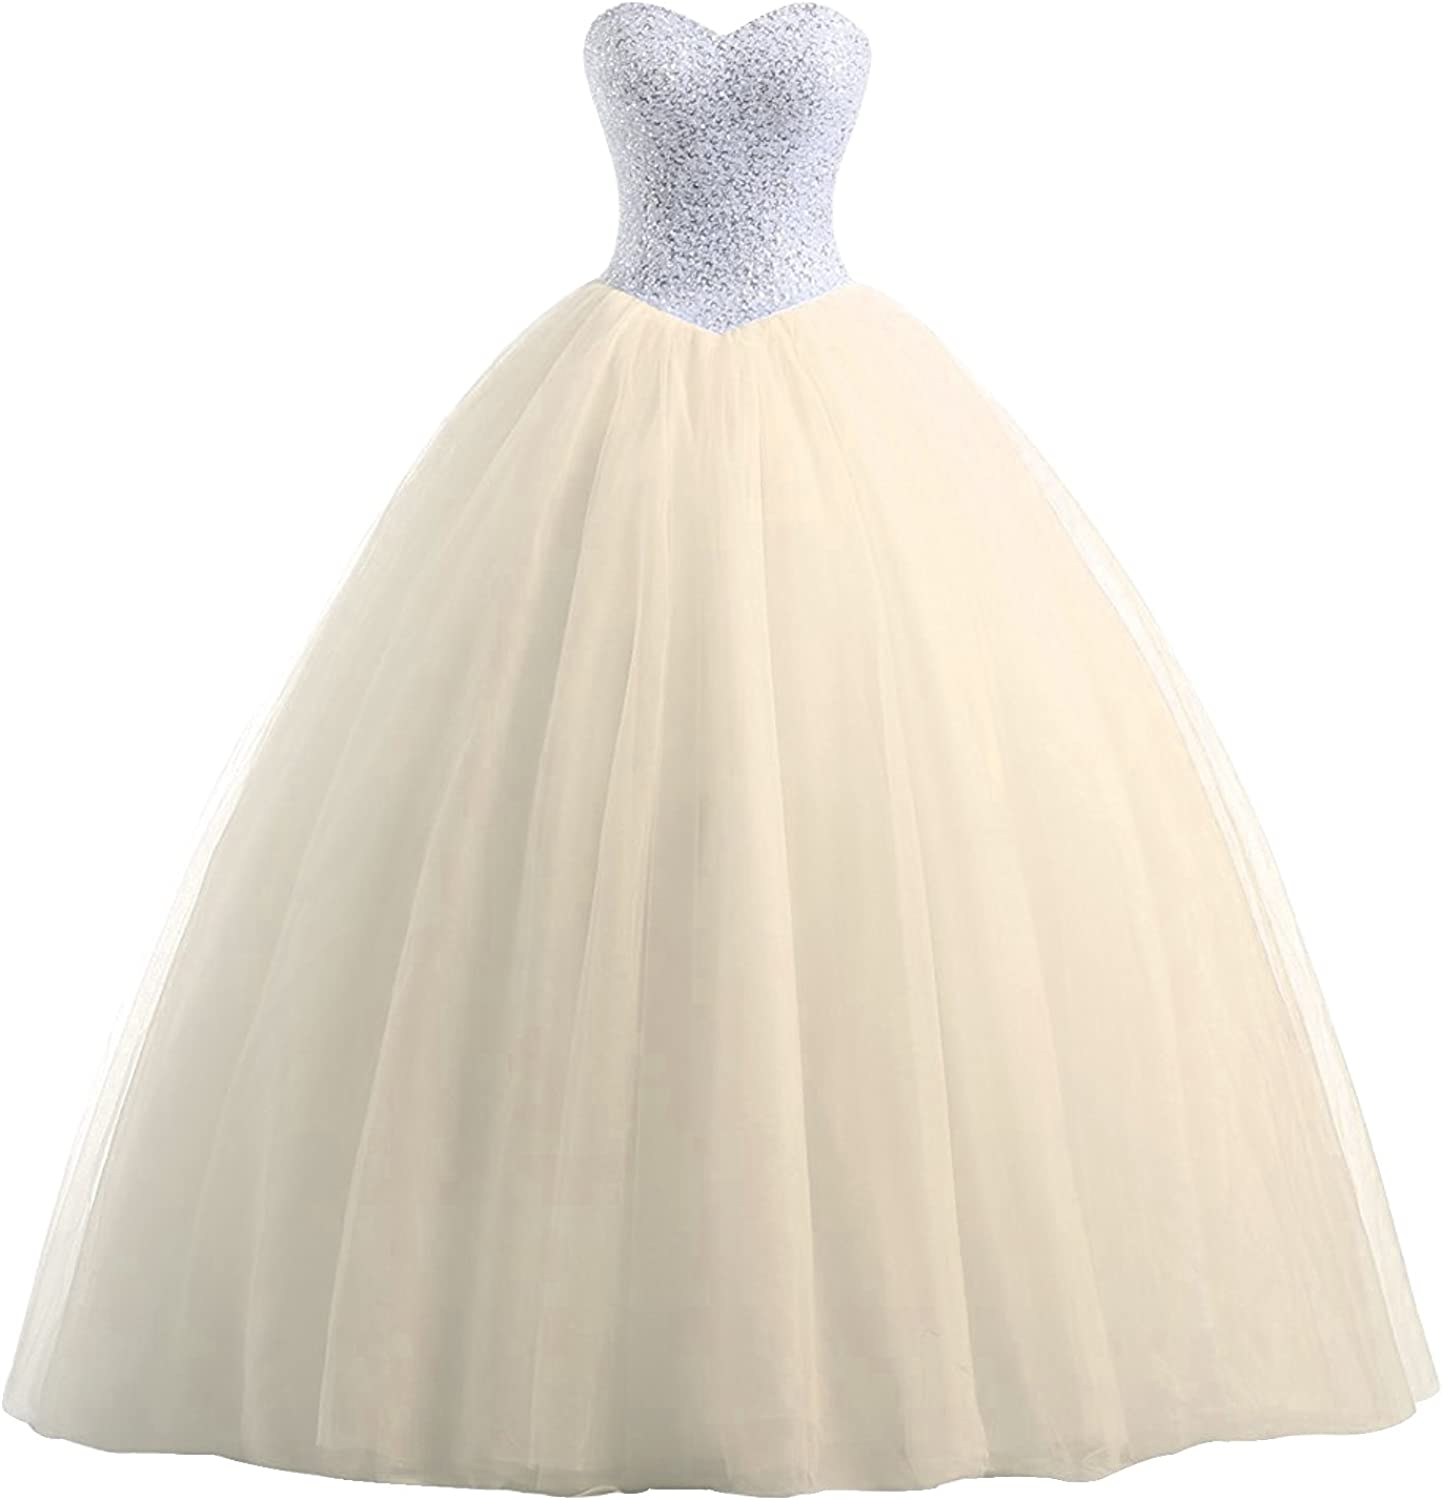 Epinkbridal Sweetheart Quinceanera Dress with Beaded Bodice Princess Ball Gown Sweet 16 Dresses